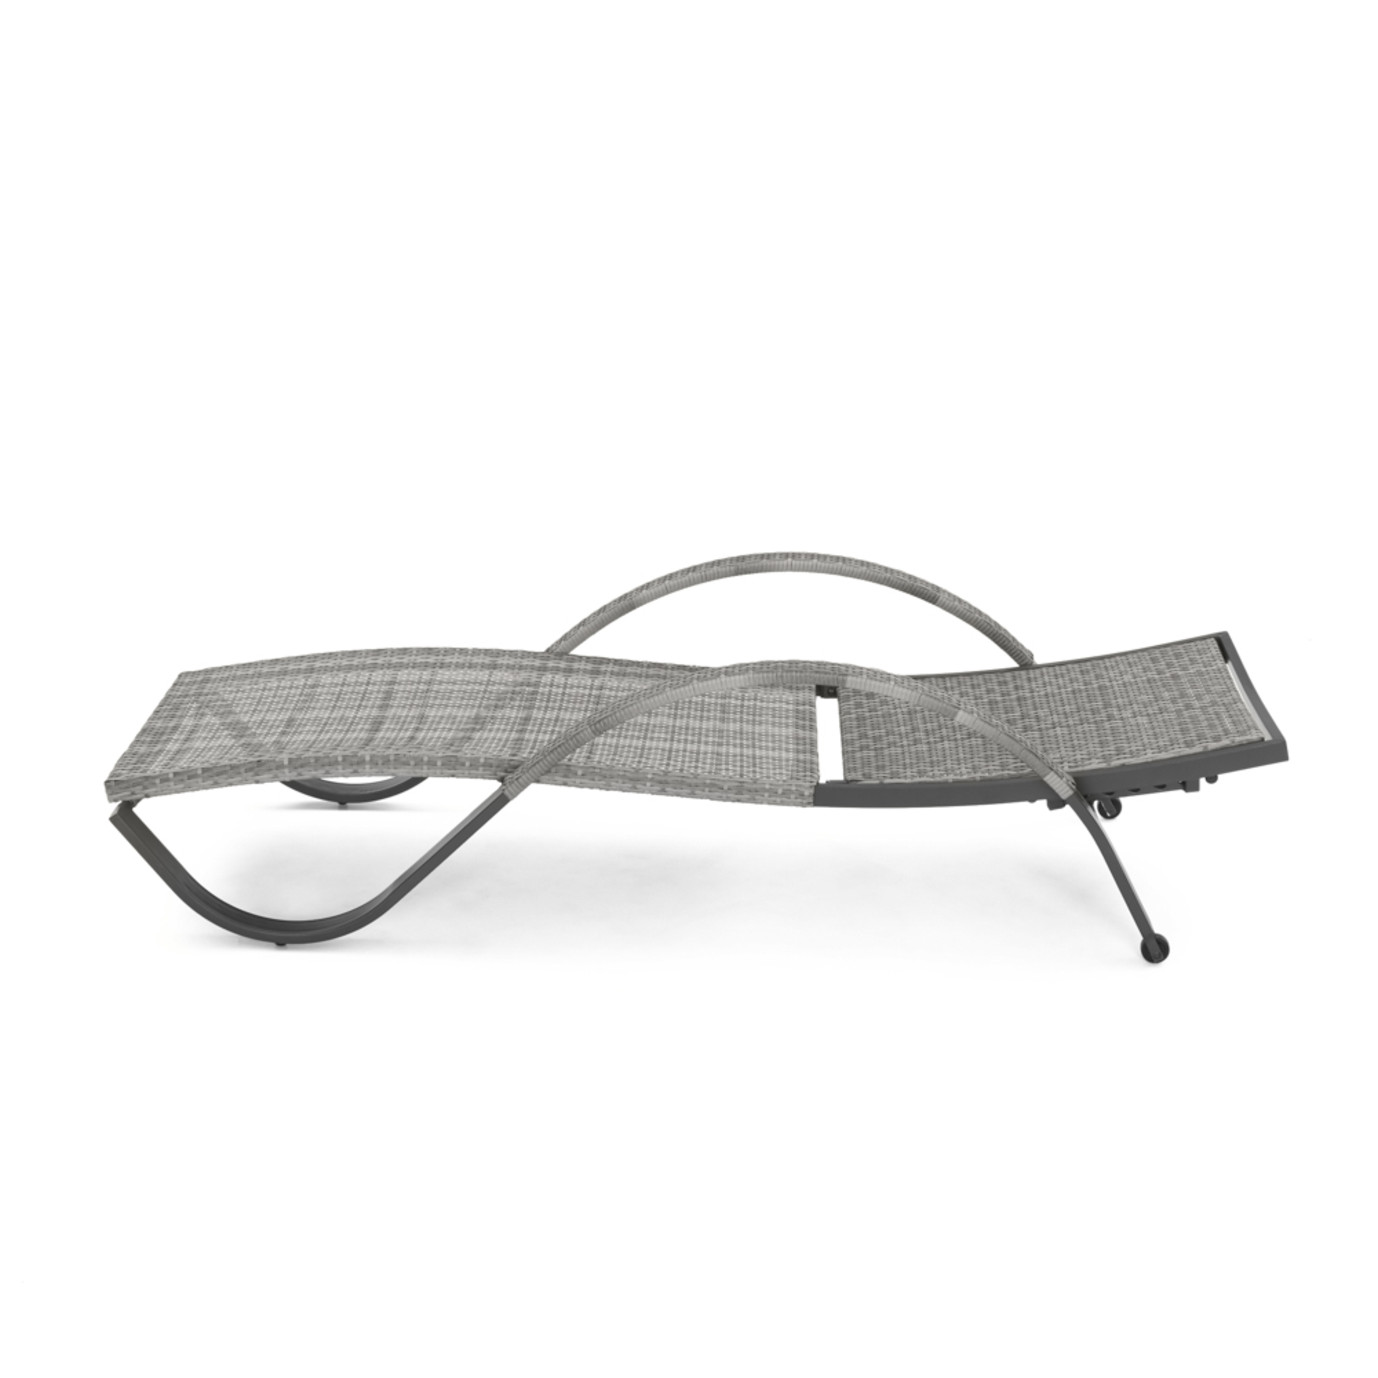 Cannes Chaise Lounges With Cushion And Pillow Charcoal